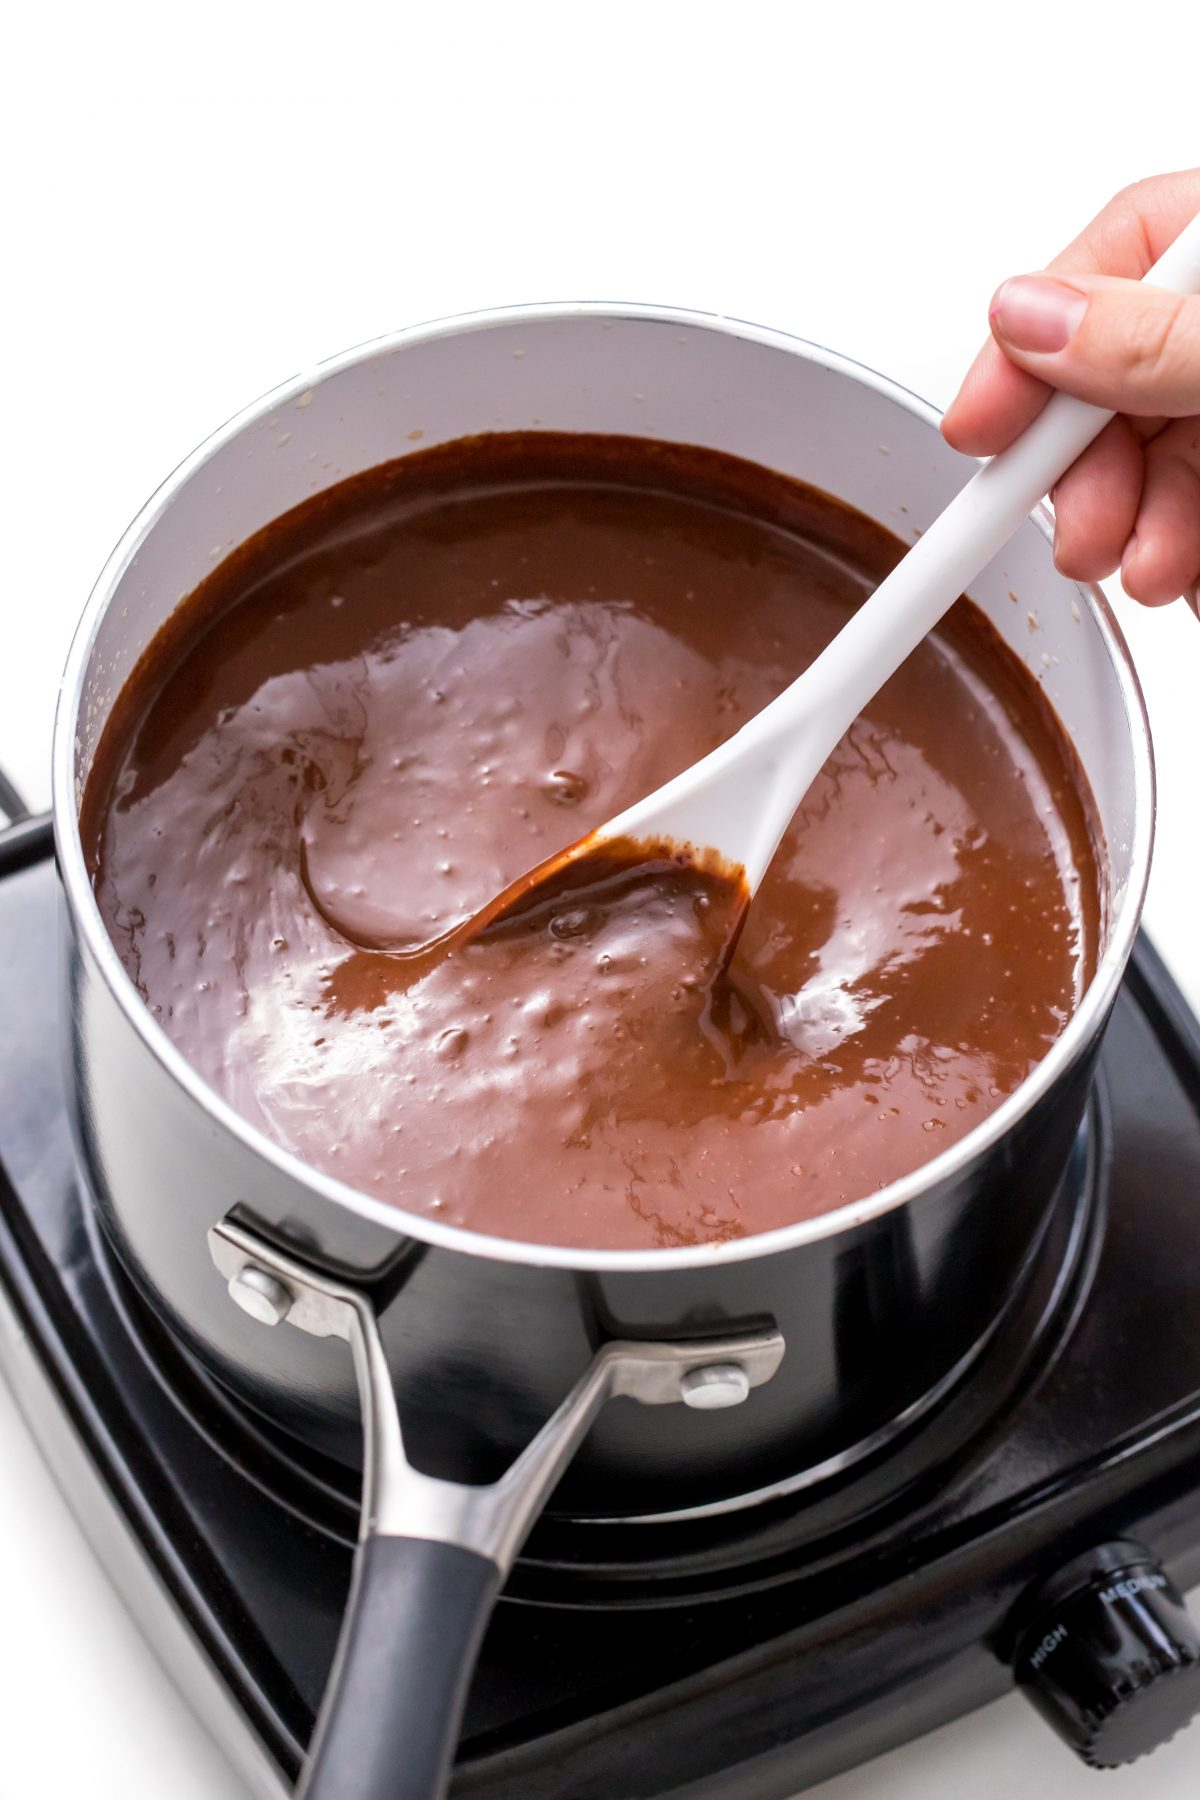 Stirring until smooth and fully melted